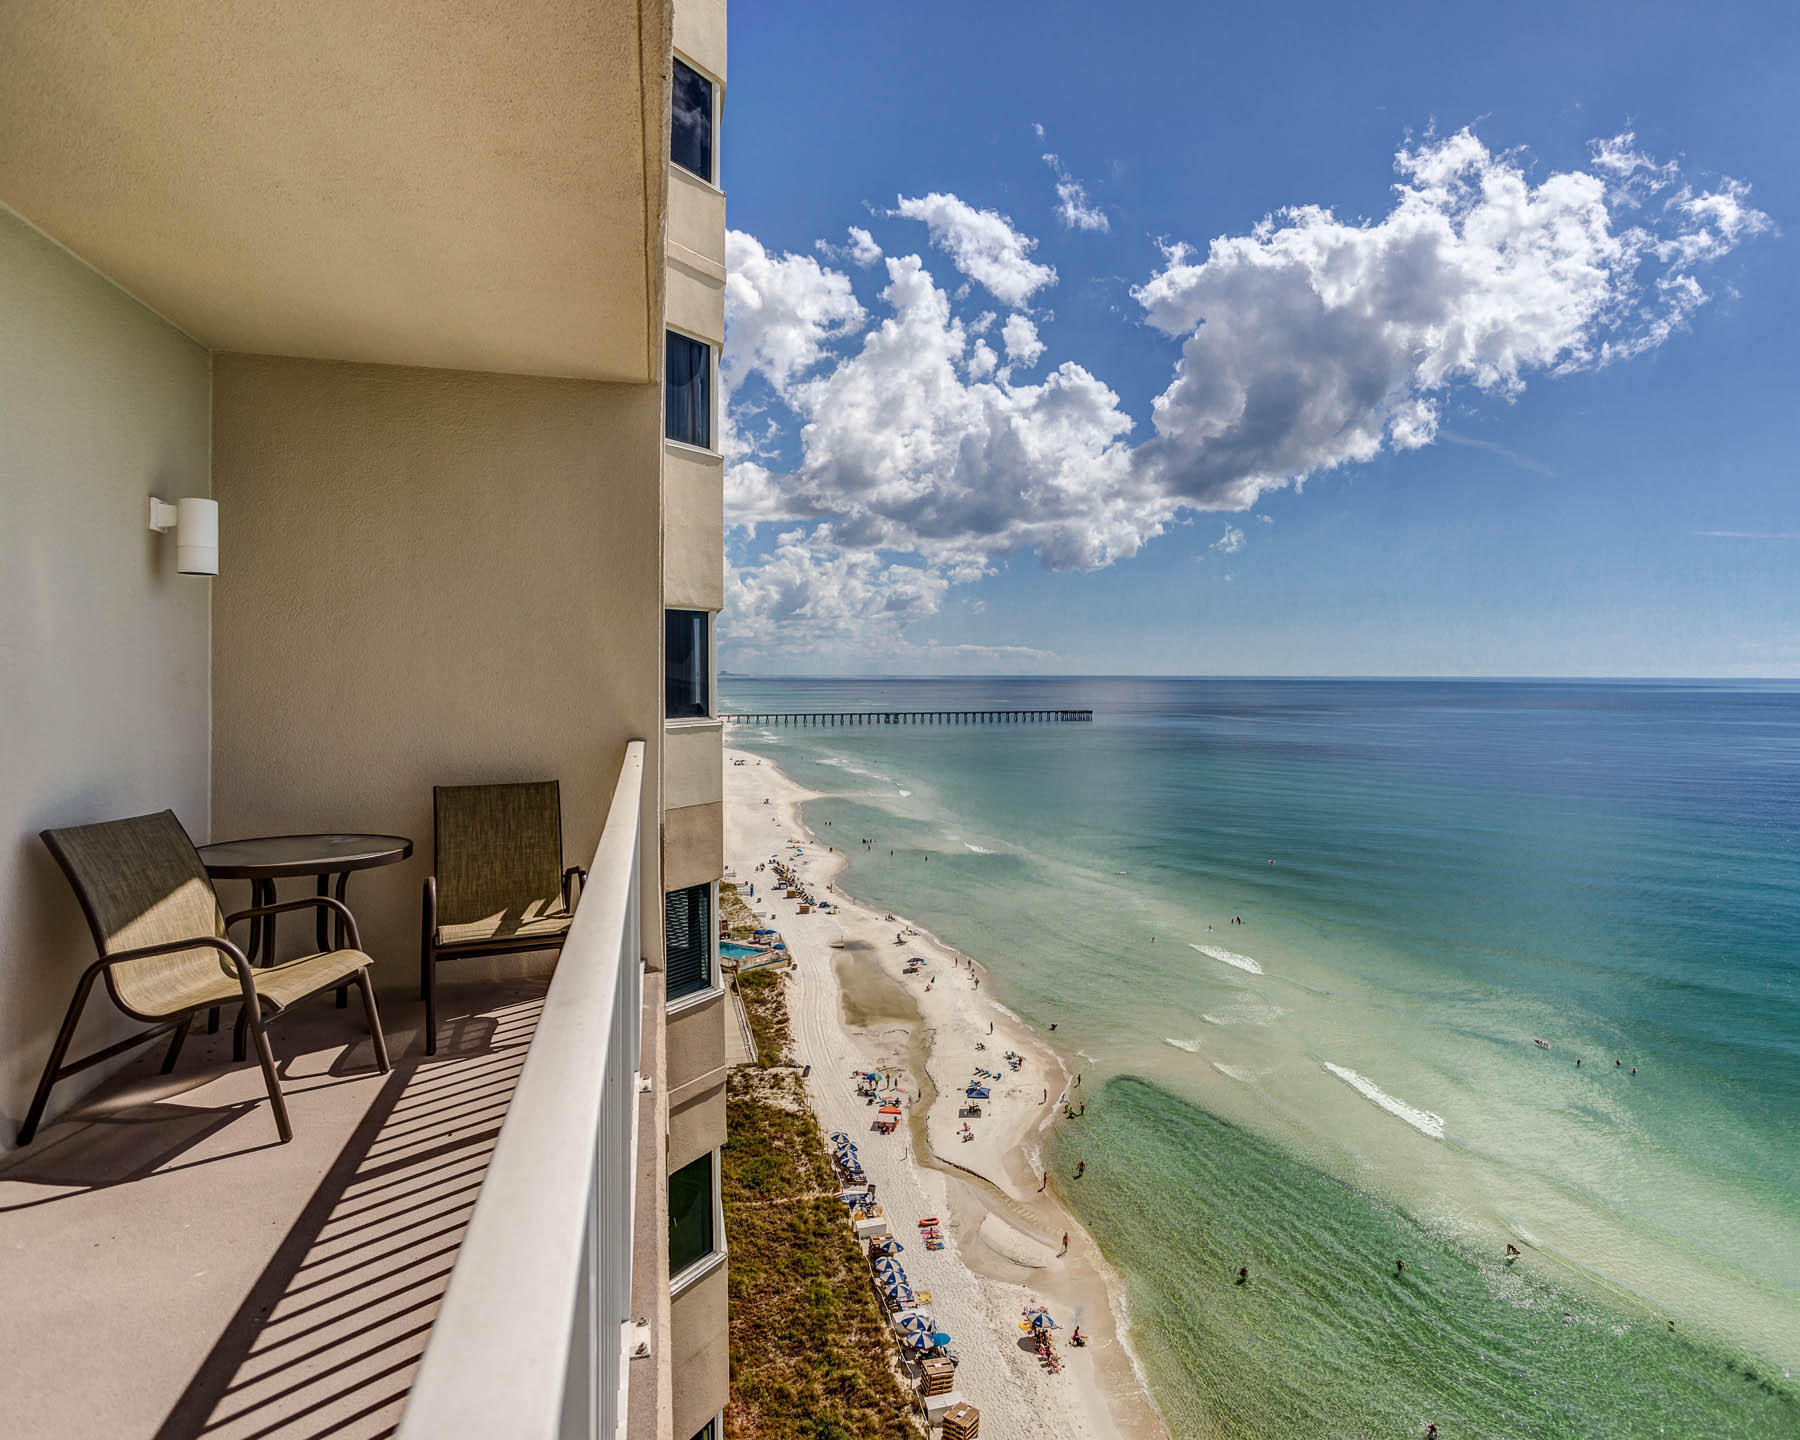 This is an immaculate 1 bedroom/2 full bathroom beach front condo at Tidewater Beach Resort in Panama City Beach, Florida. Tidewater 1504 is the largest of the one bedroom floor plans offered at Tidewater with 934 SF. The condo features a large kitchen and living area with beautiful beach views and access to a generous beach front balcony. The condo sleeps six comfortably with hall bunk beds and a sleeper sofa. These condos are true rental machines with estimated gross returns of $30k to $35k per year. Tidewater Beach Resort offers one of the best locations in town with close proximity to Pier Park Shopping Development, Frank Brown Park and the Panama City Beach International Airport (ECP)! You can't go wrong with Tidewater Beach Resort if you are looking for the perfect beachfront condo! Amenities including 2 outdoor gulf front pools, 1 indoor heated pool, game rooms, 1 restaurant, a convenience store, a huge beach front fitness center, movie theater, 4 hot tubs, saunas, steam rooms, conference room, covered parking, a computer lounge, game room, and a beautiful owners lounge on the 30th floor.